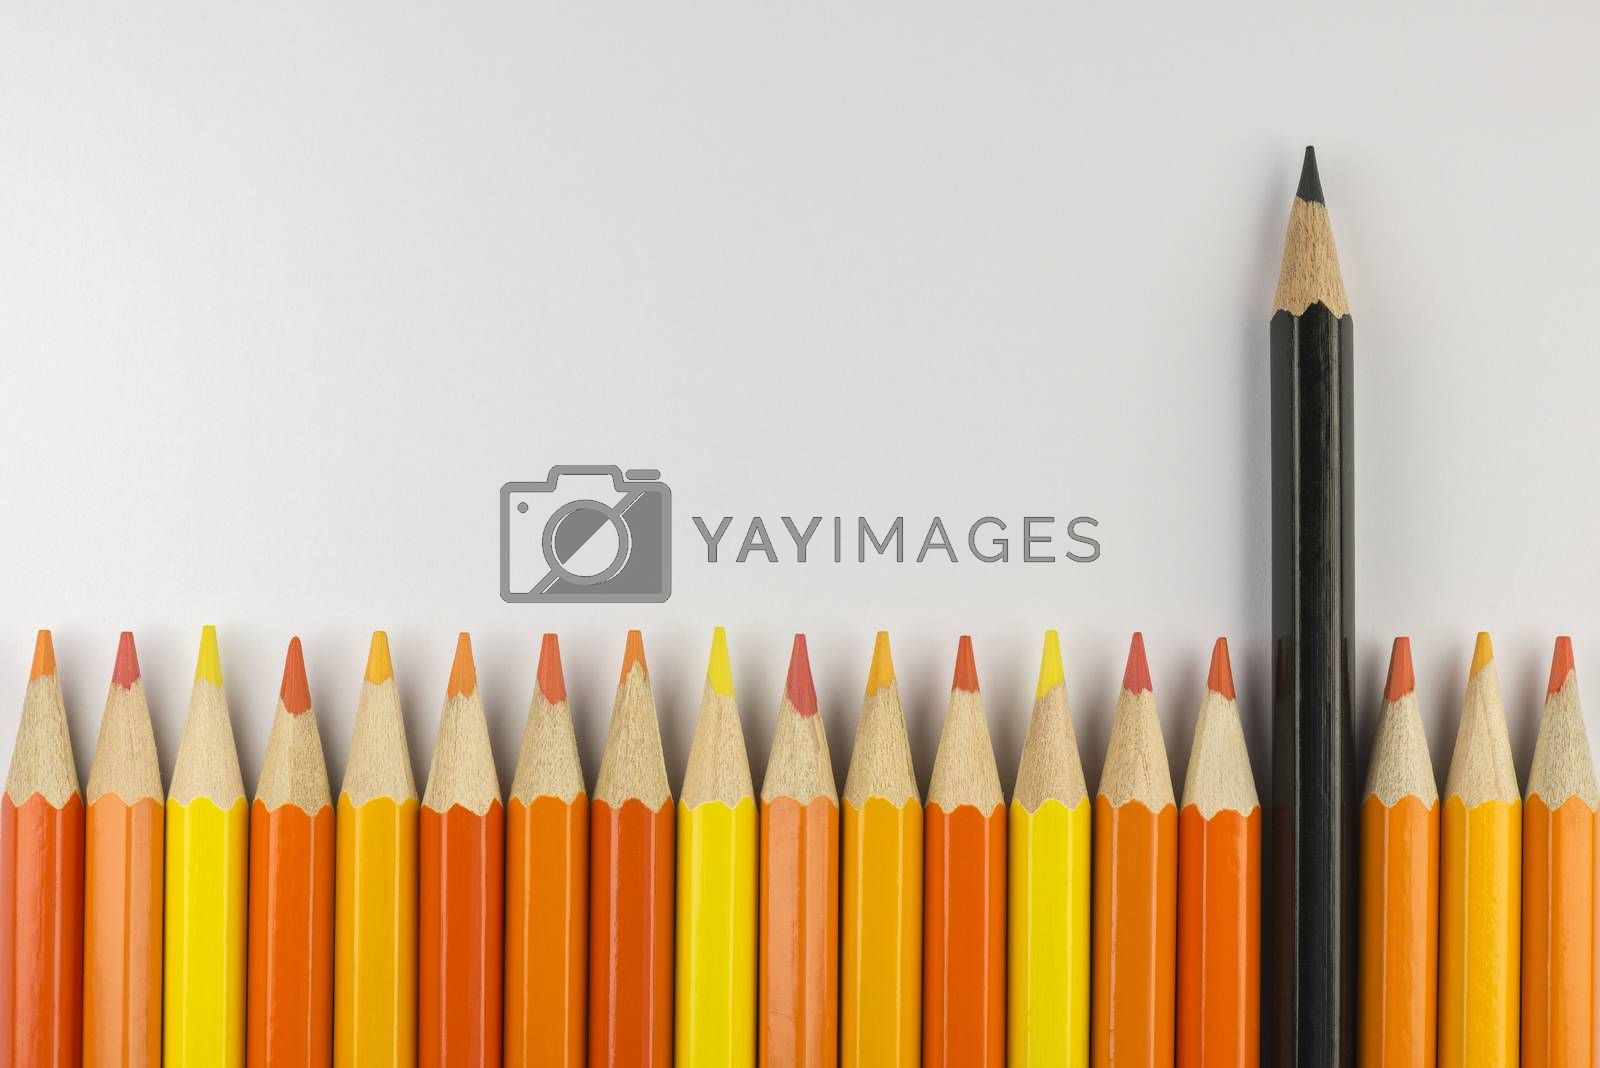 Abstract composition of a set wooden colour pencils against a white background